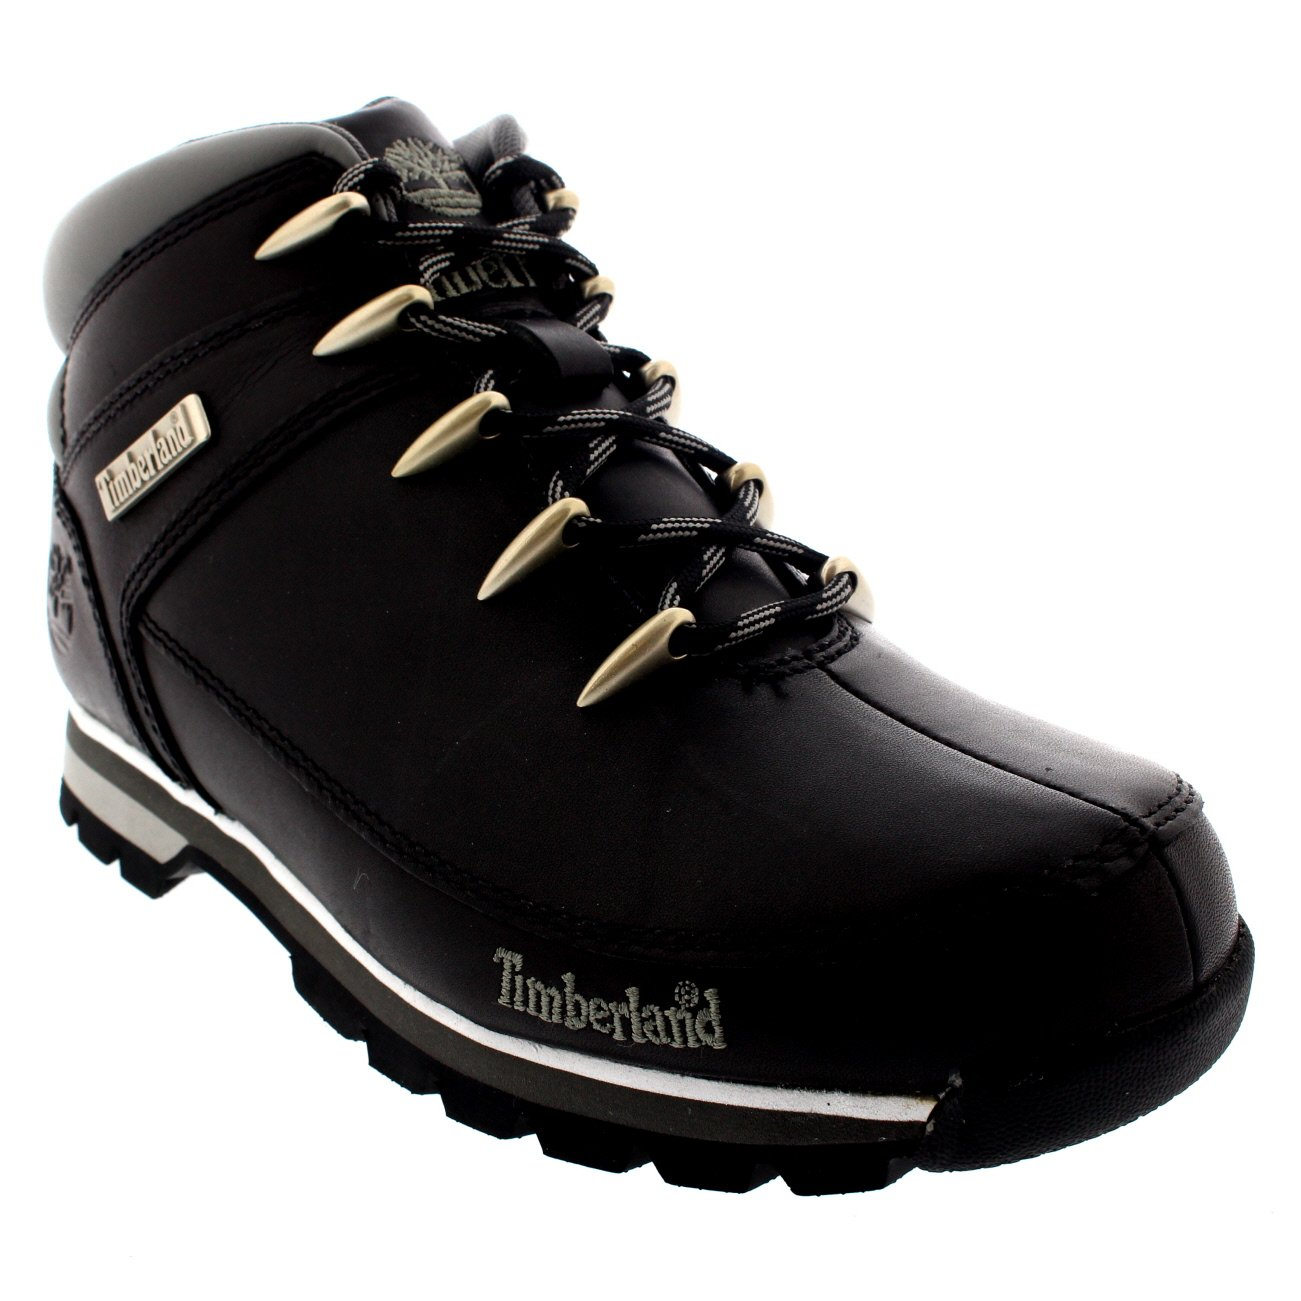 Mens Timberland Euro Sprint Hiker Casual Hiking Walking Ankle Boots - Black - 11.5